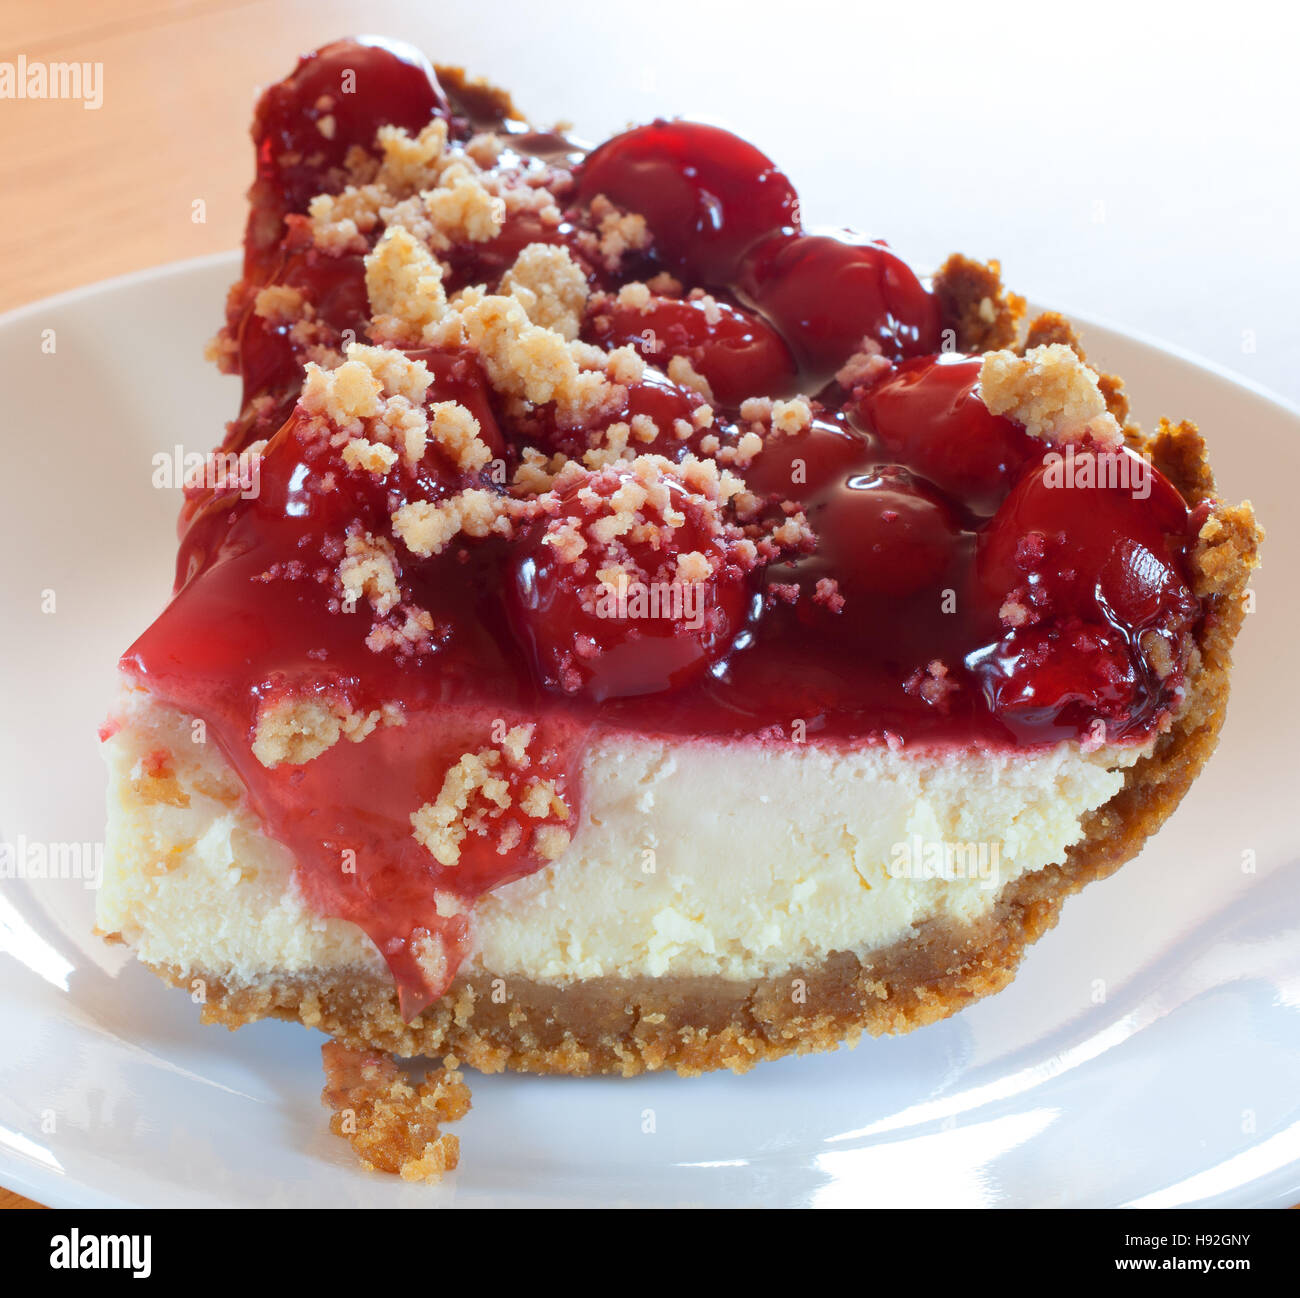 Thick piece of cheesecake with cherries and graham cracker crust - Stock Image